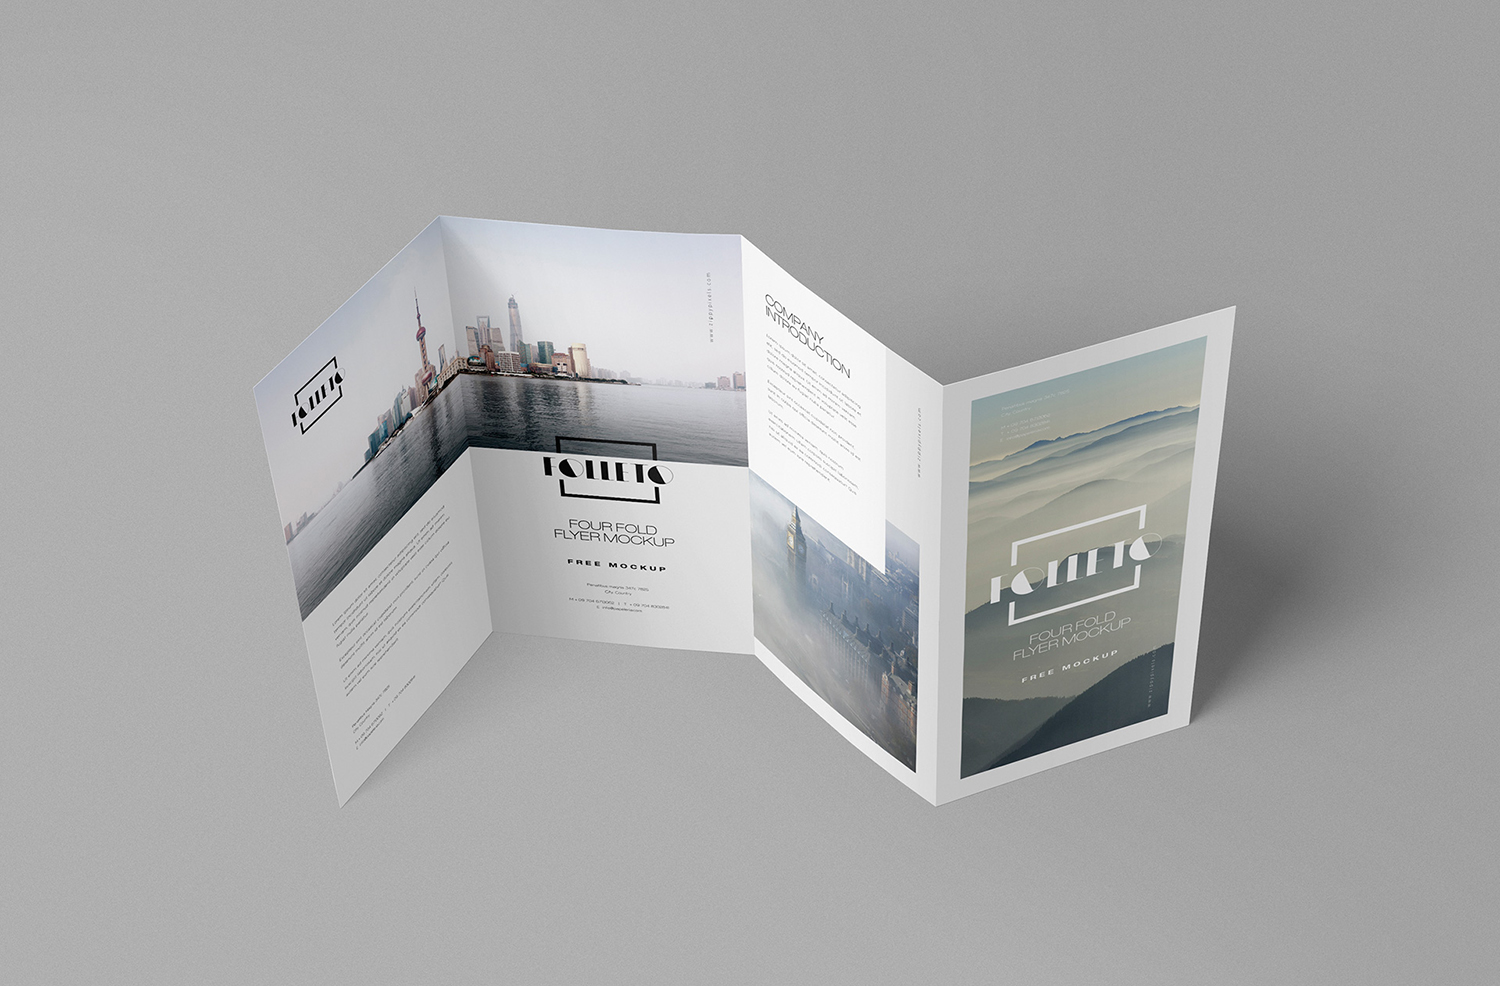 Photorealistic Folded Brochure Mockup